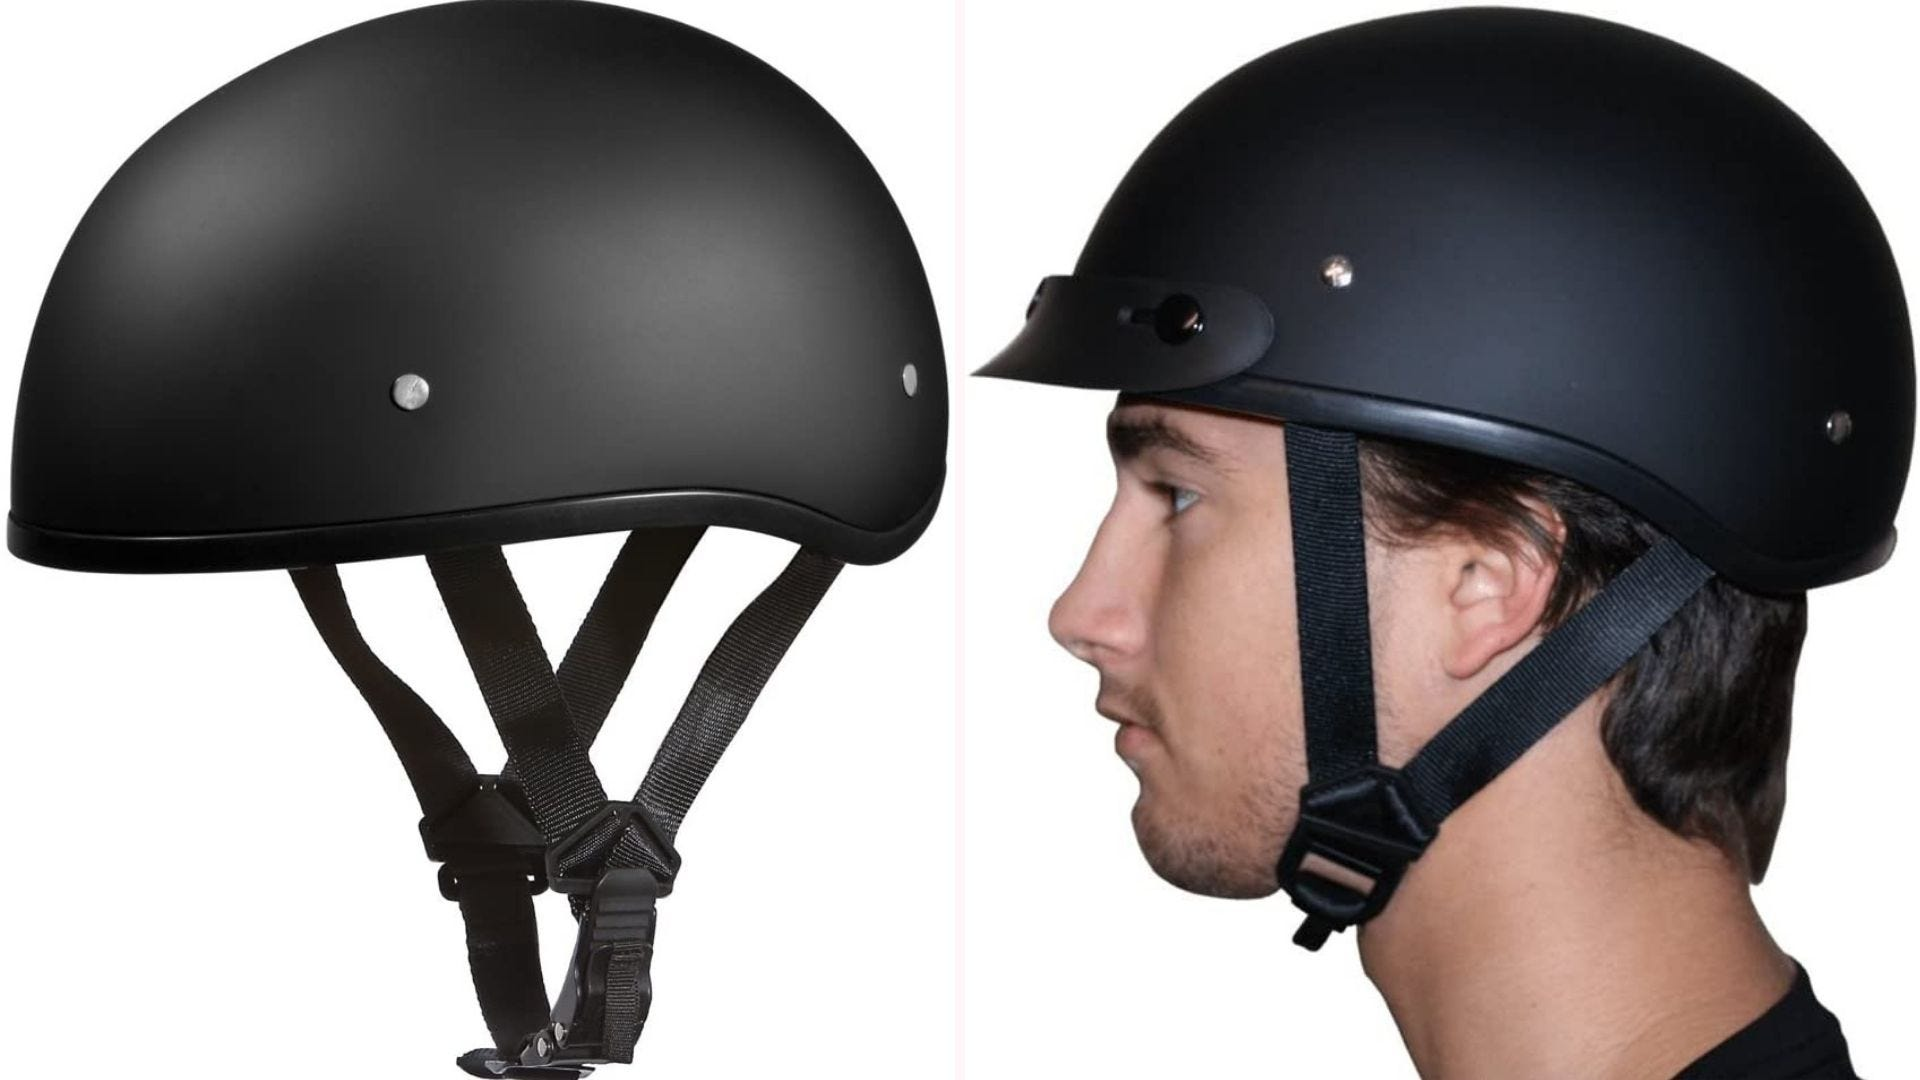 On the left, a dull black helmet that has a Y-Strap lock retention system. On the right, a man wears the black helmet.